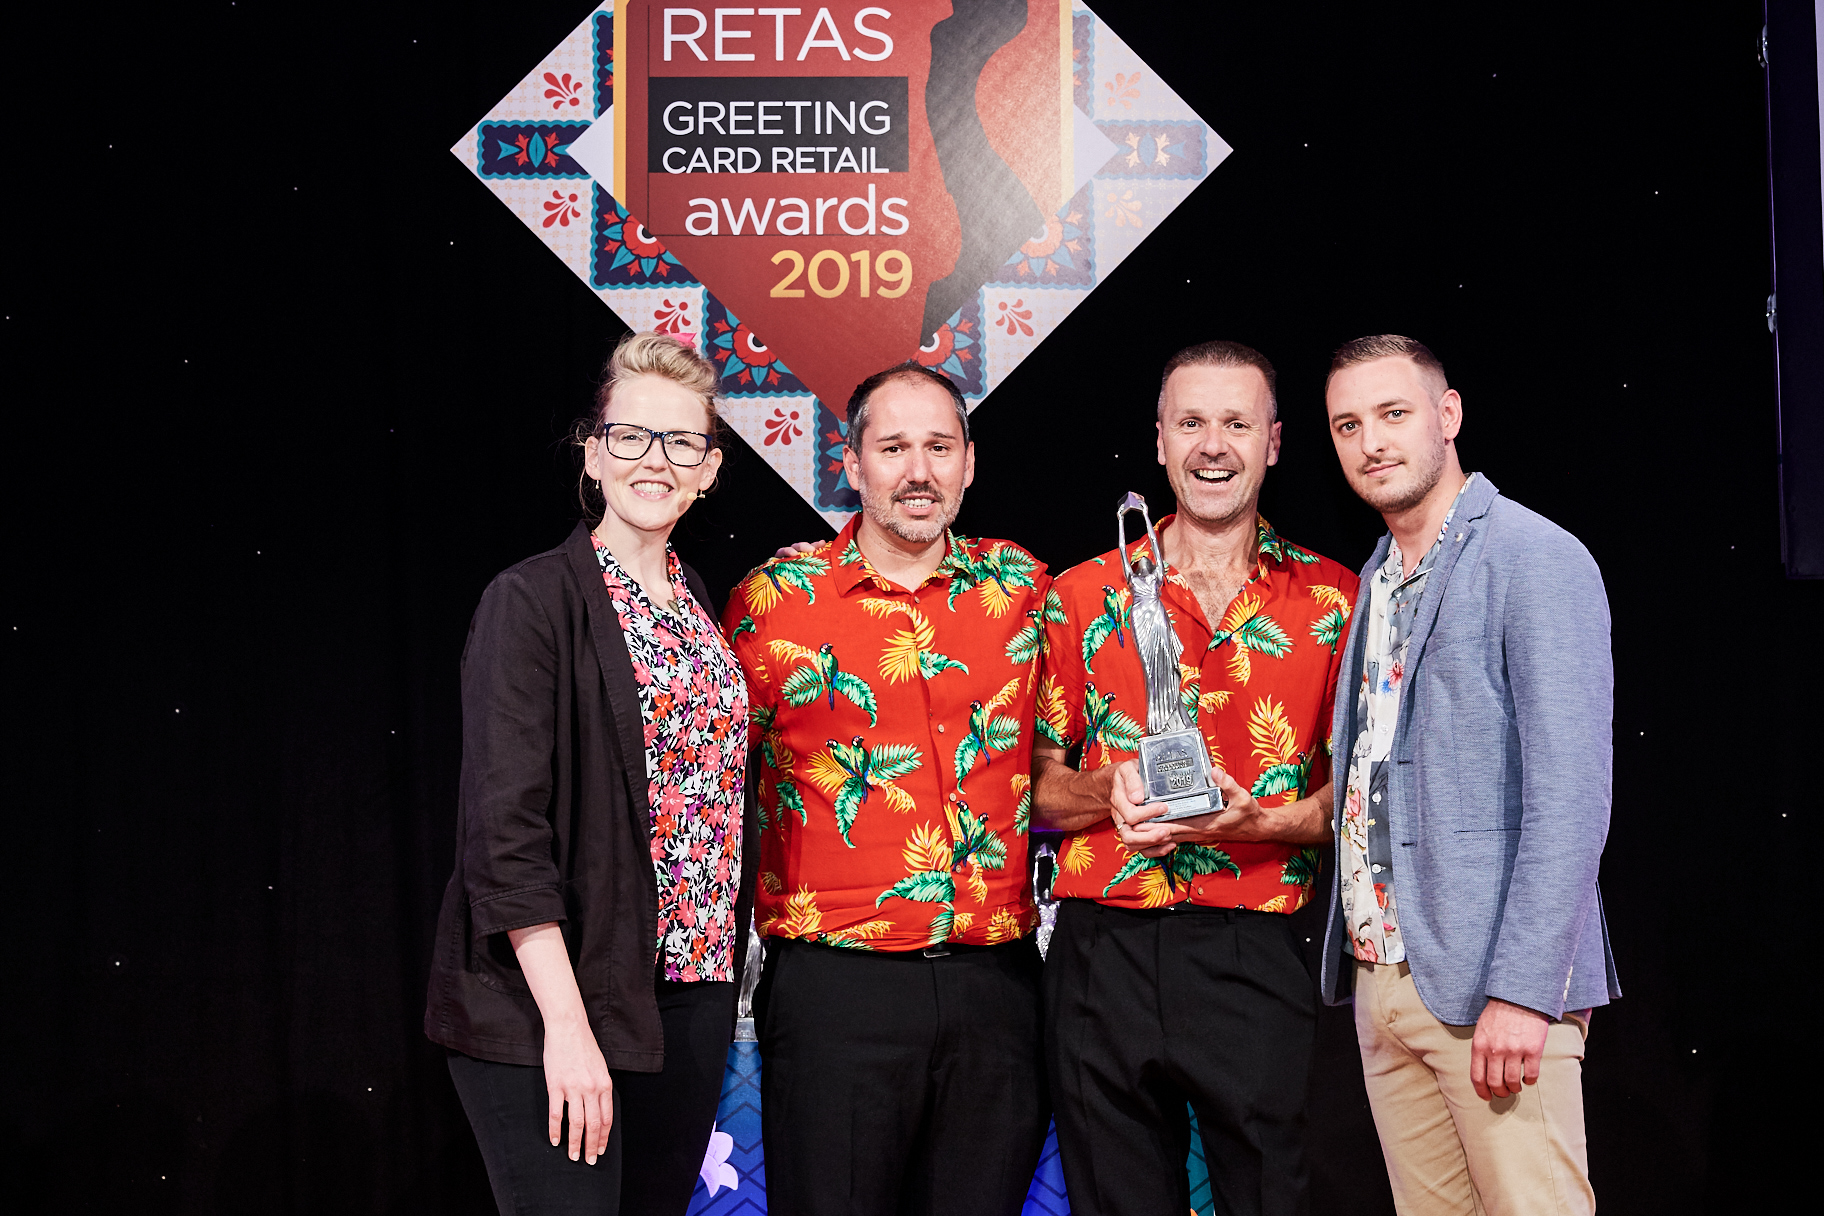 Above: Carl Dunne (2nd right) and his partner Oliver Guise-Smith (2ndleft) collecting the retailer's award at The Retas from Paper Salad's Jack Wilson, sponsor of the category who was on stage with Pippa Evans, host of the event.